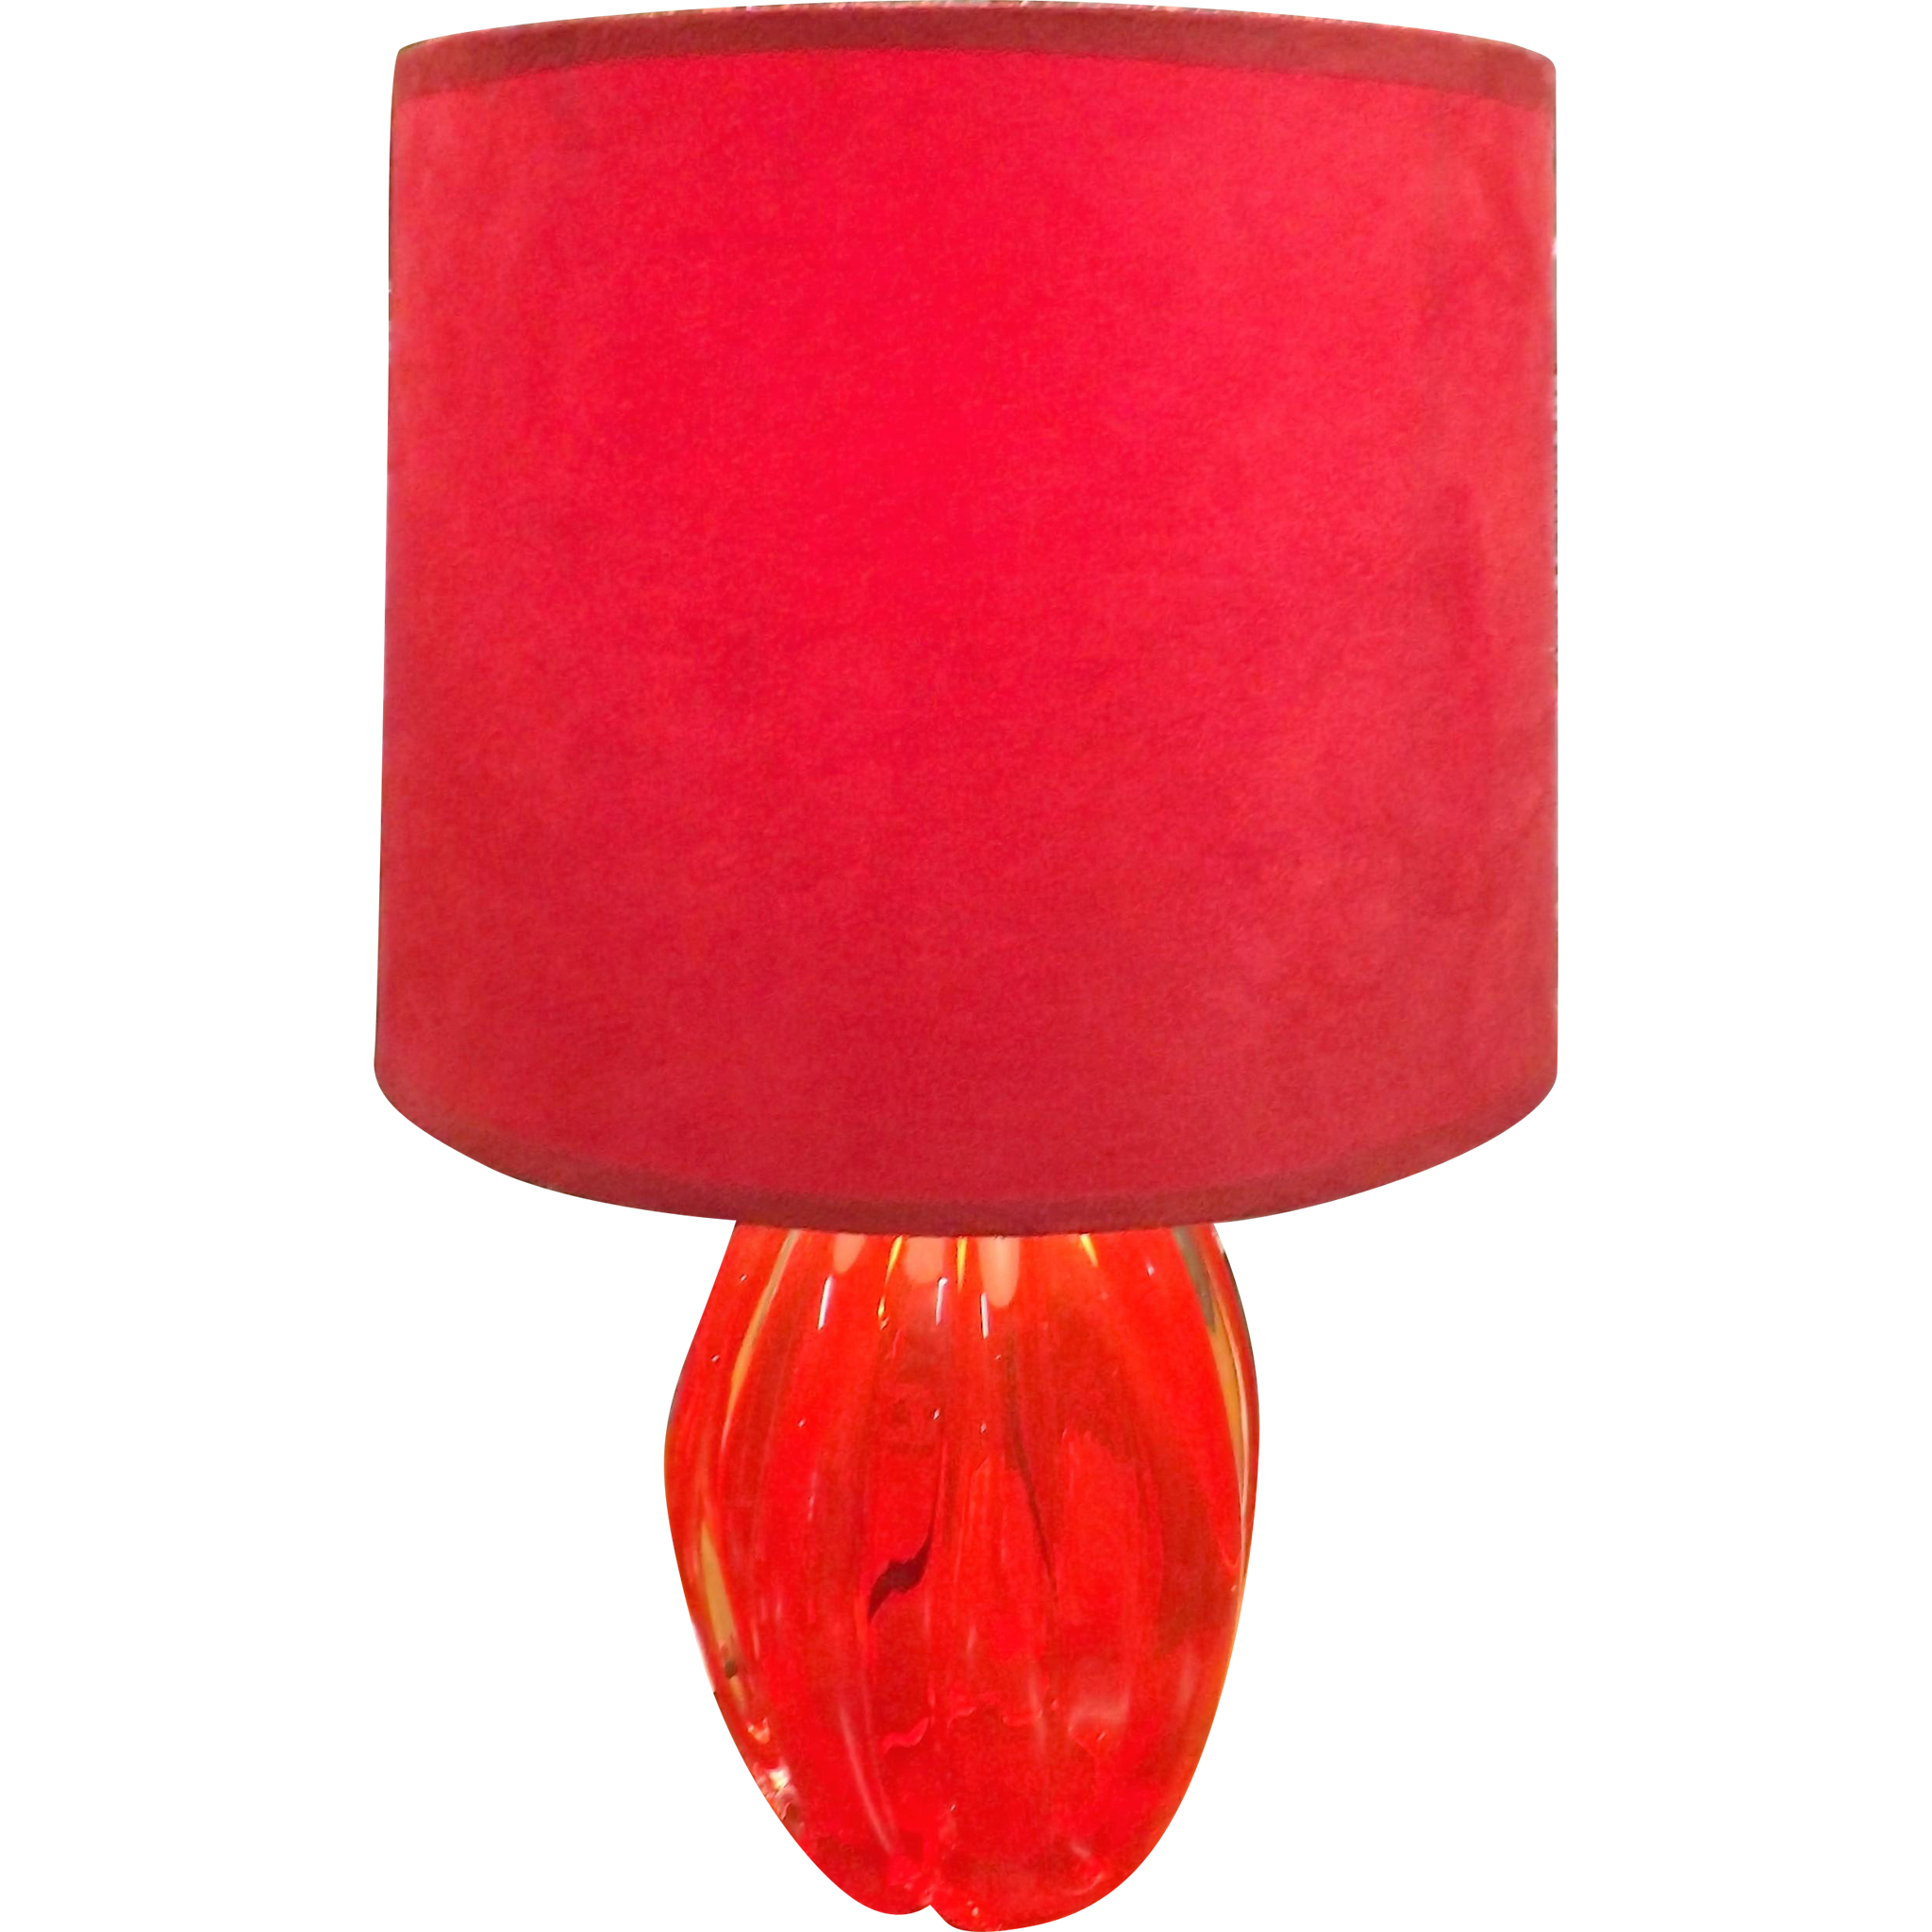 Stunning Raspberry Red Murano Art Glass Table Lamp - circa 1970's